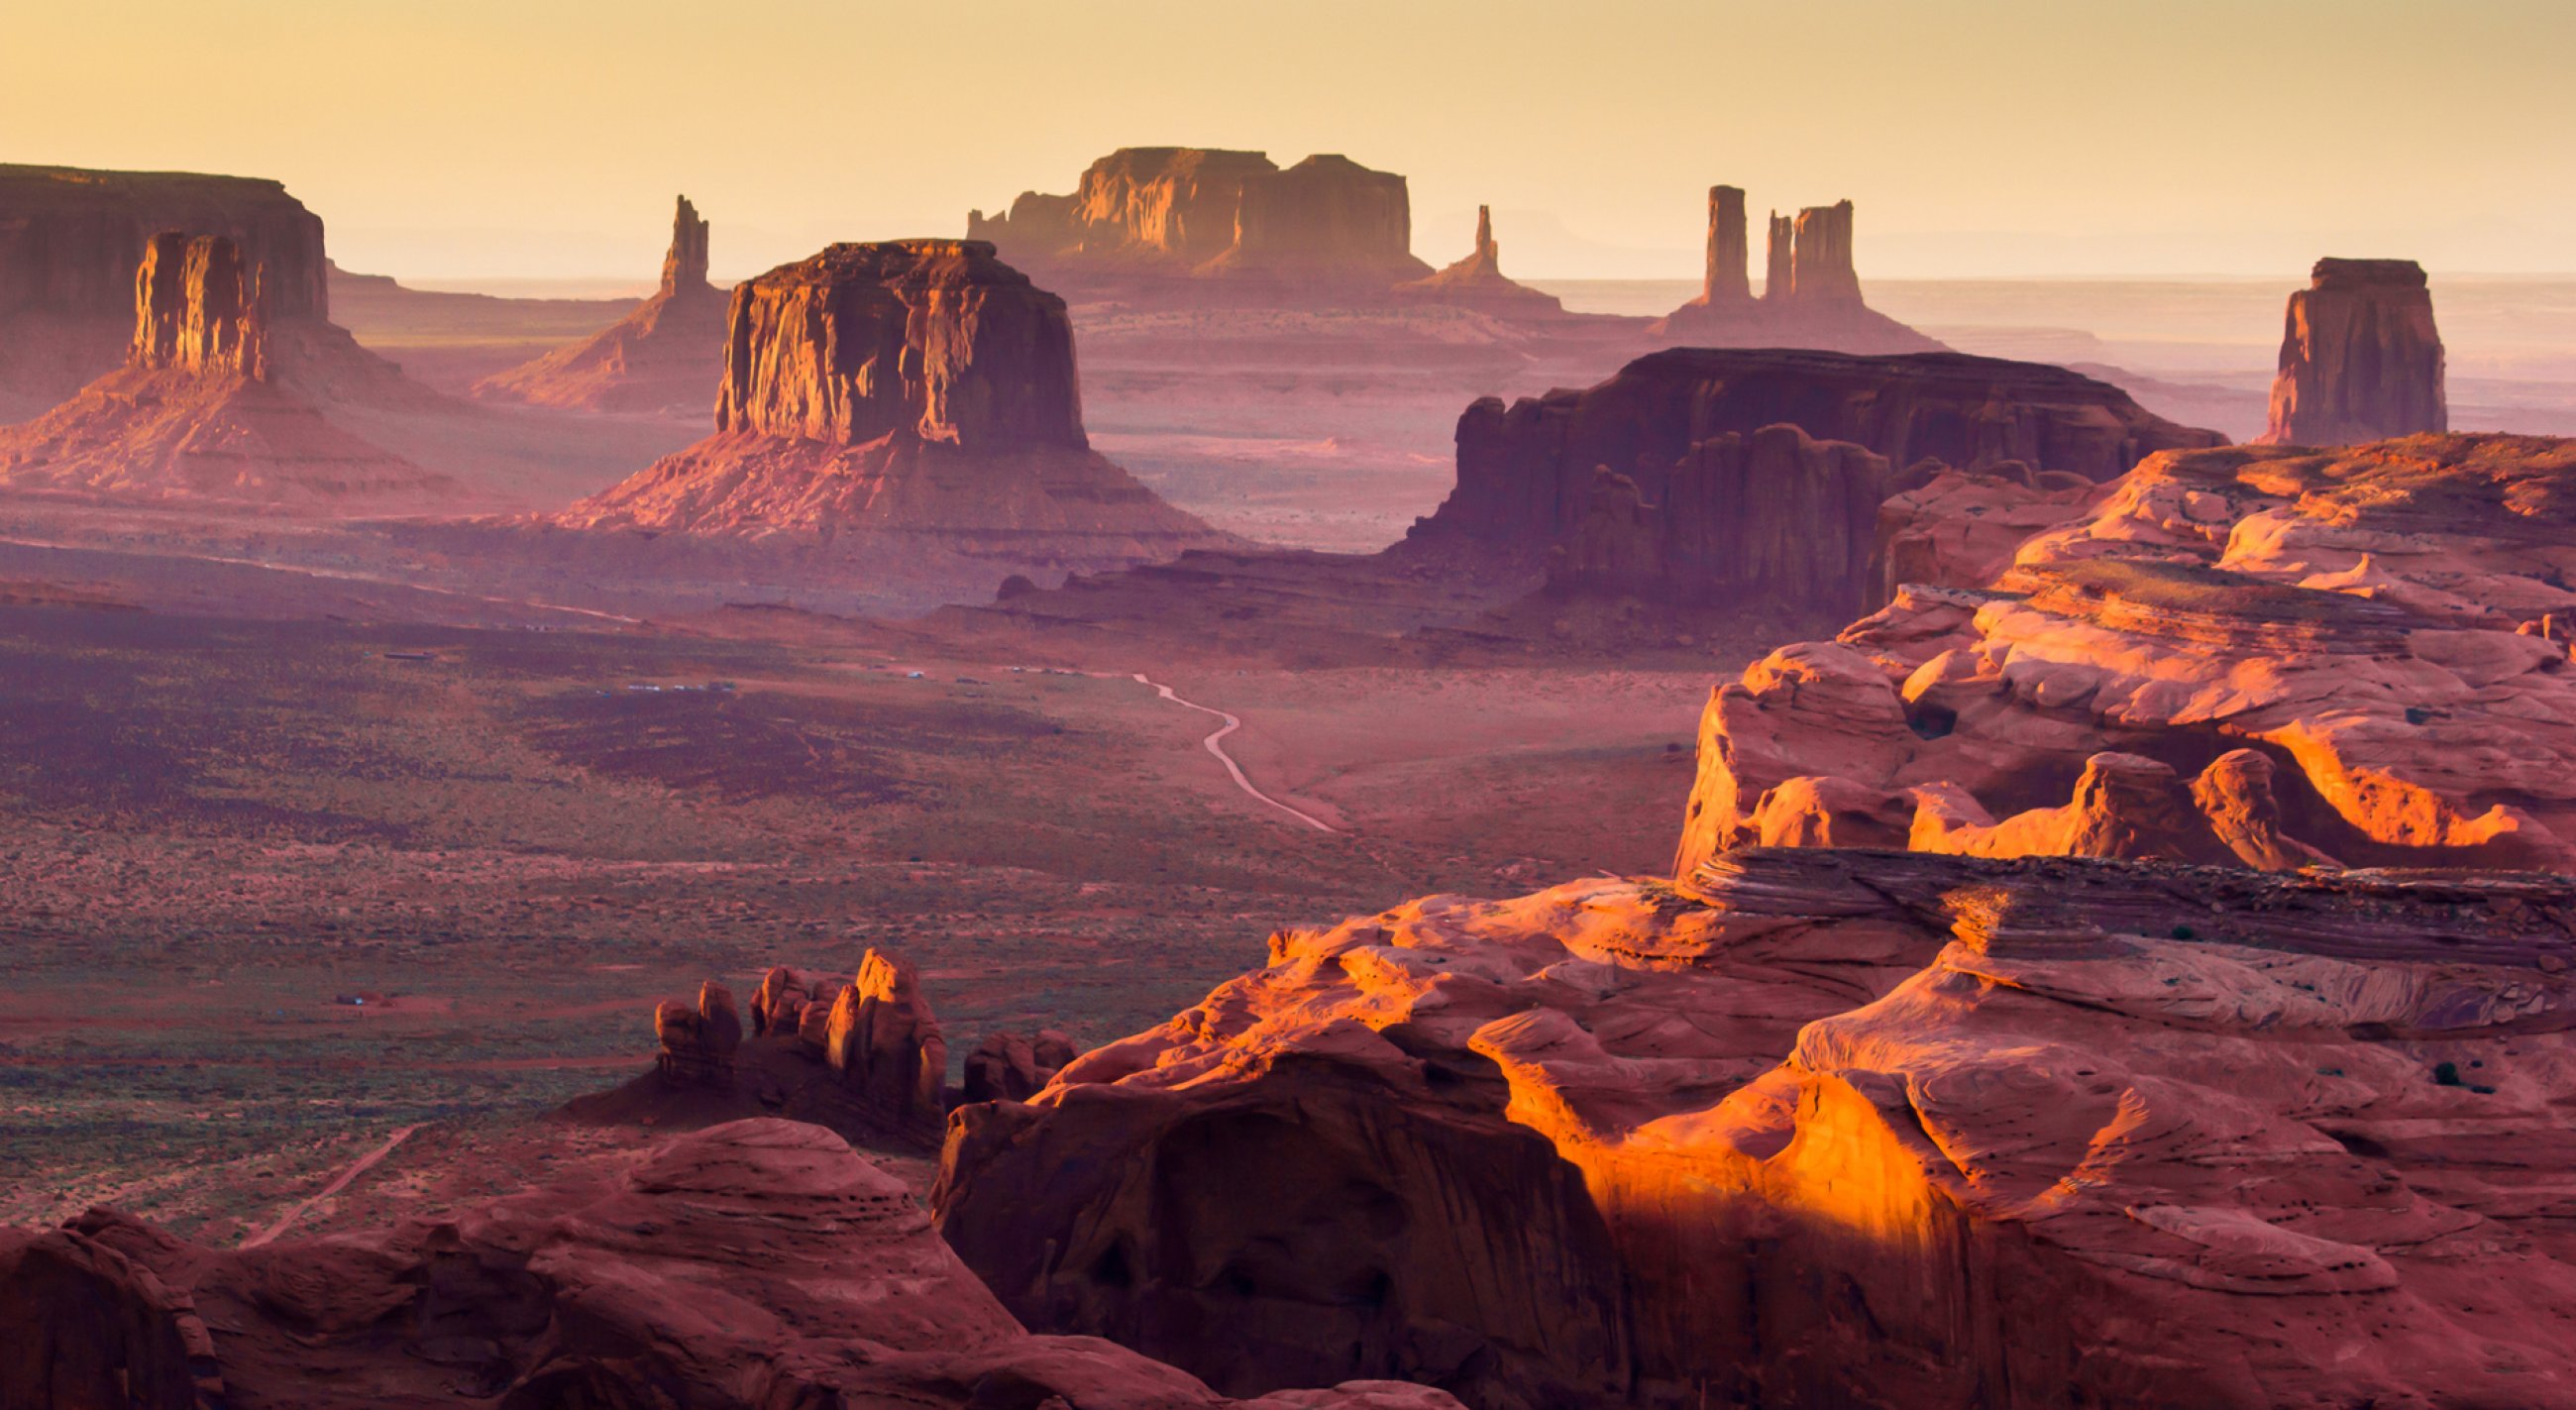 https://bubo.sk/uploads/galleries/8379/monument-valley-shutterstock-78621931-4-.jpg